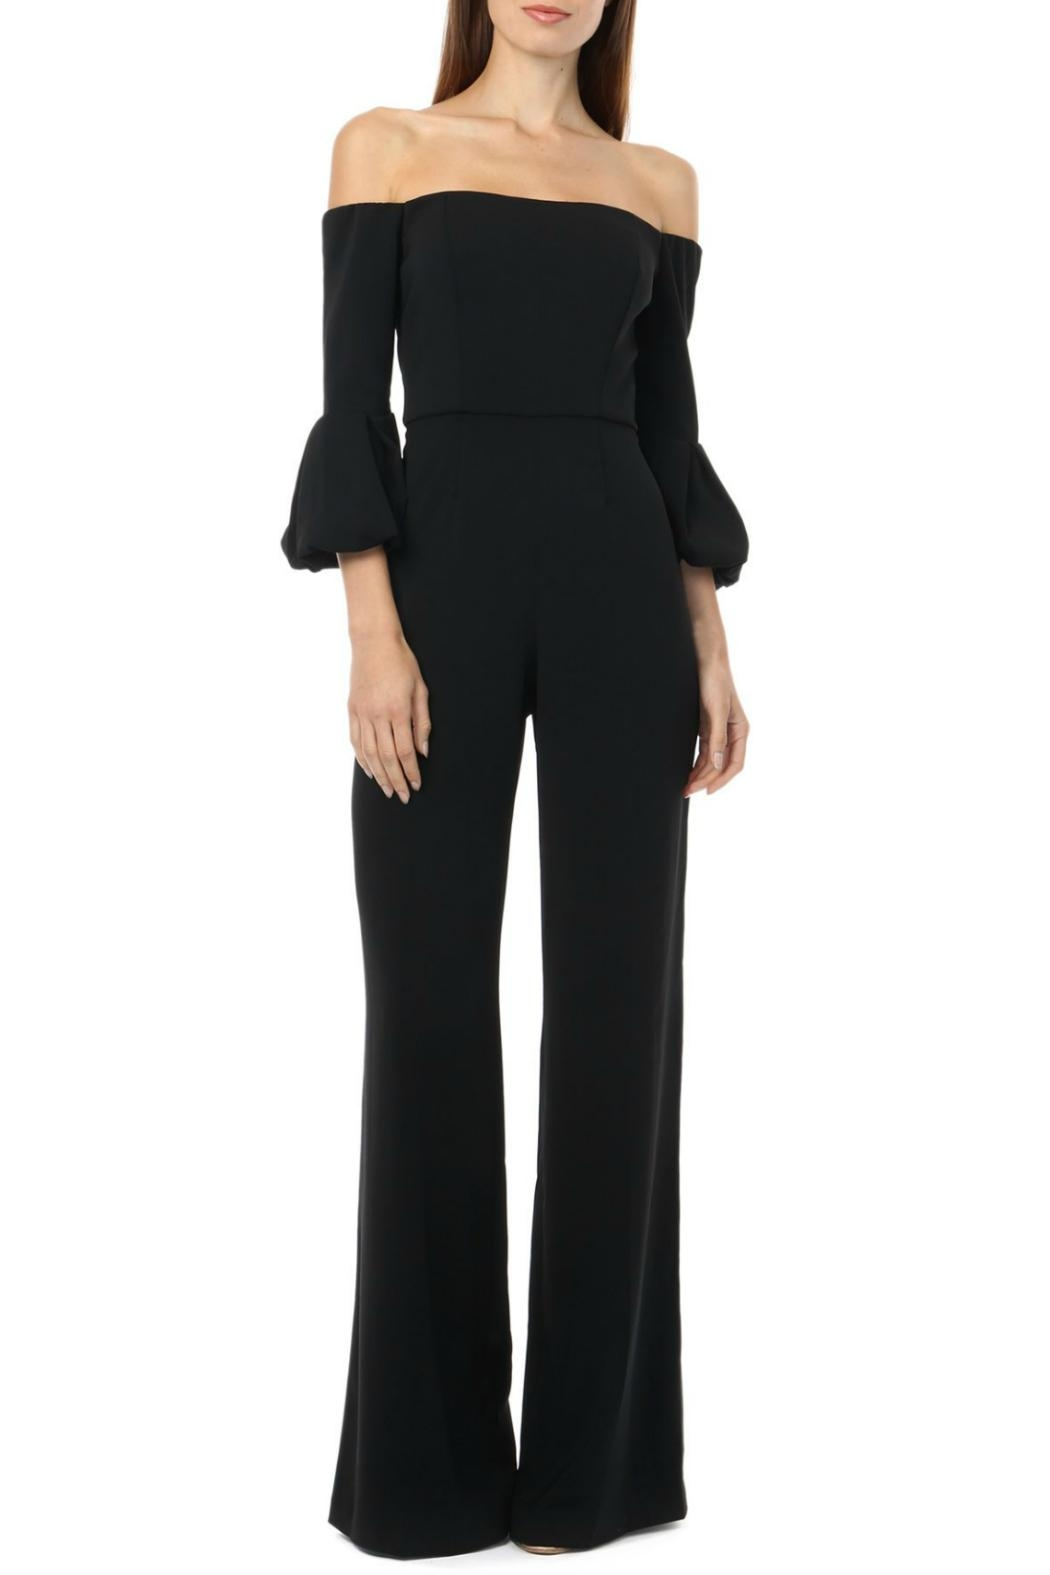 e14efdc4a7b Jay Godfrey Off-The-Shoulder Jumpsuit from New Jersey by Robin s ...